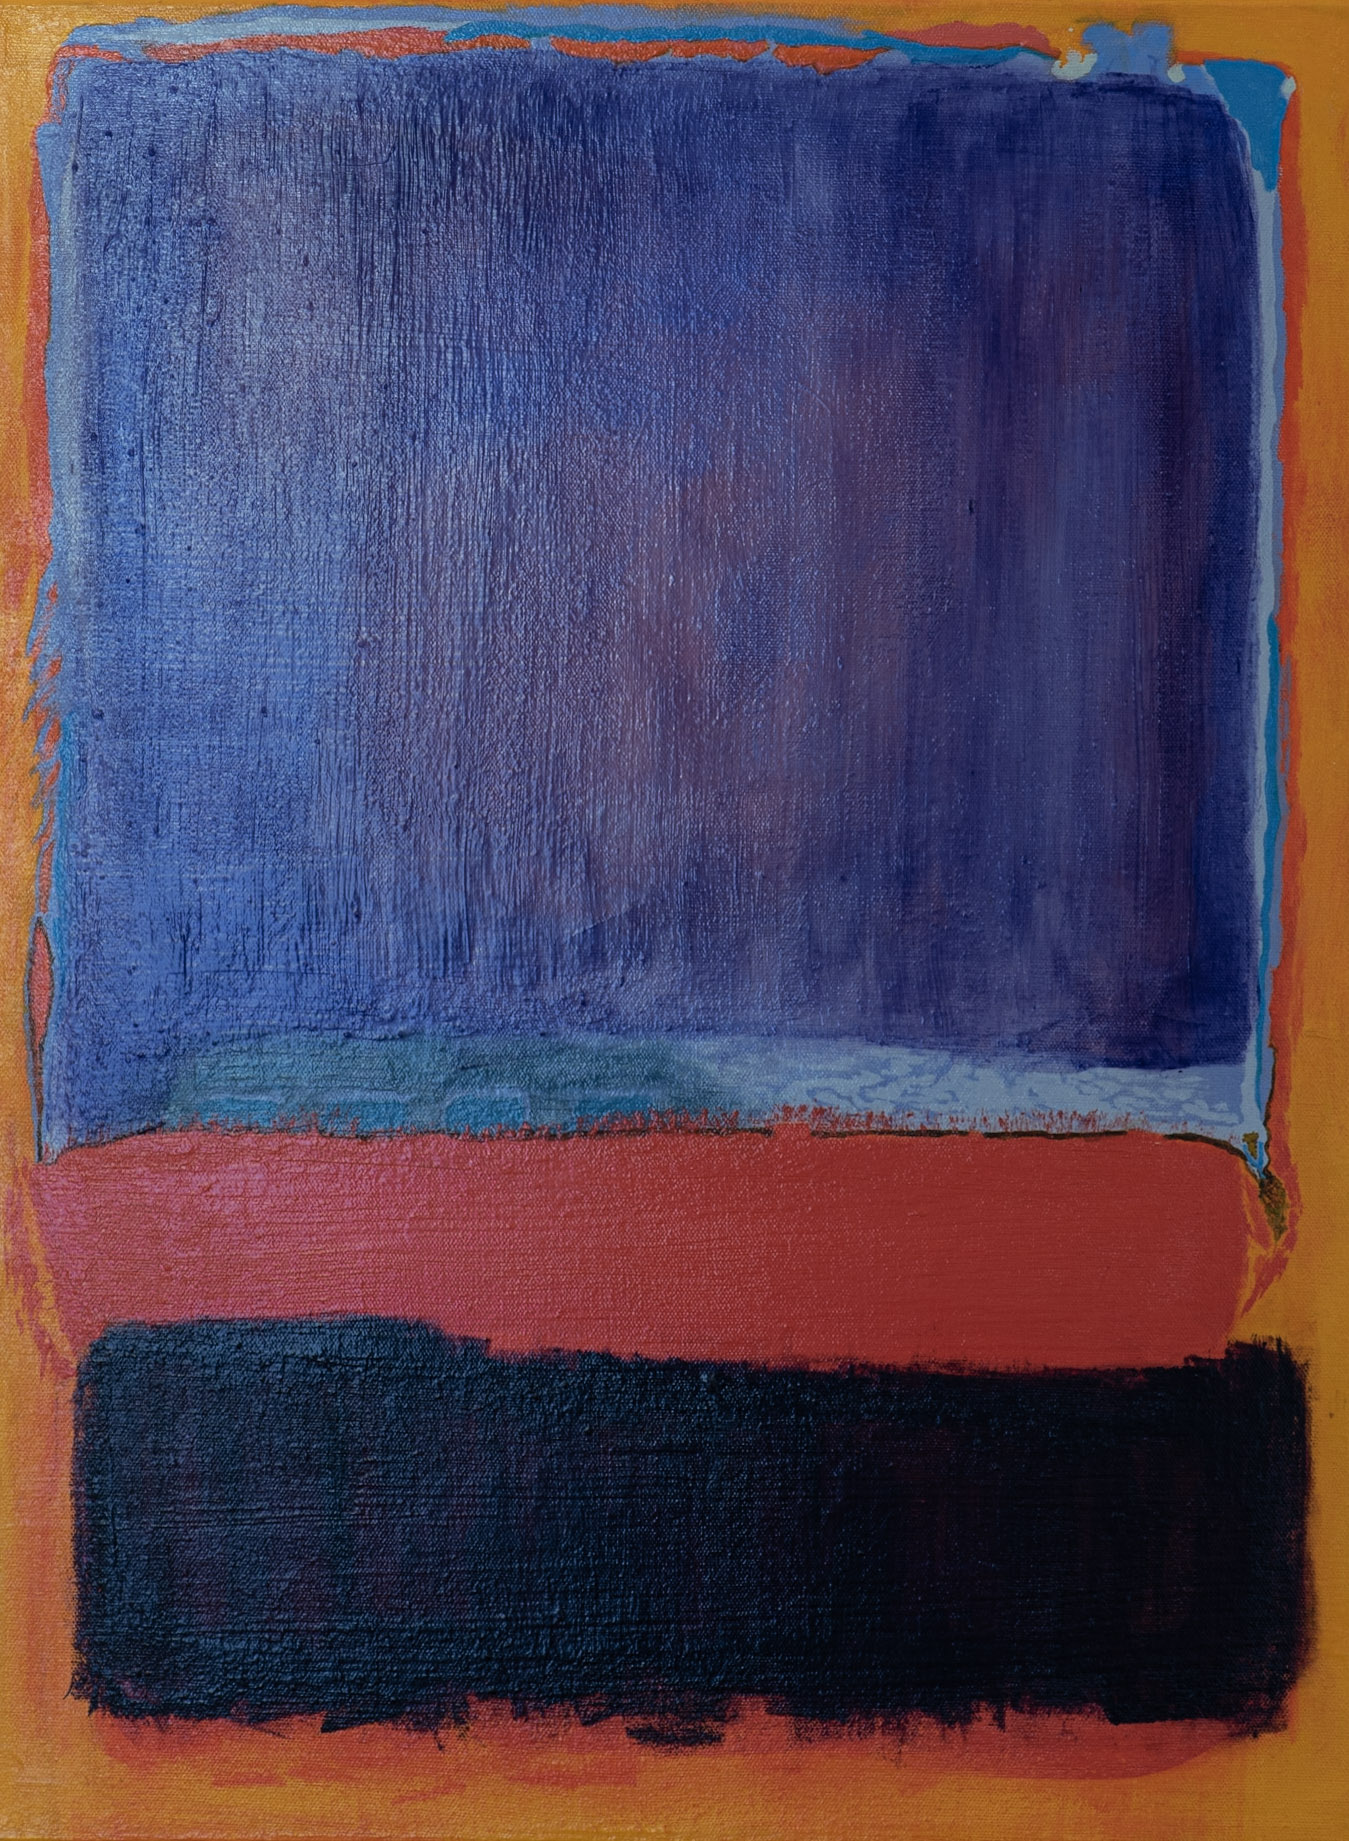 Inspired by Rothko, Untitled